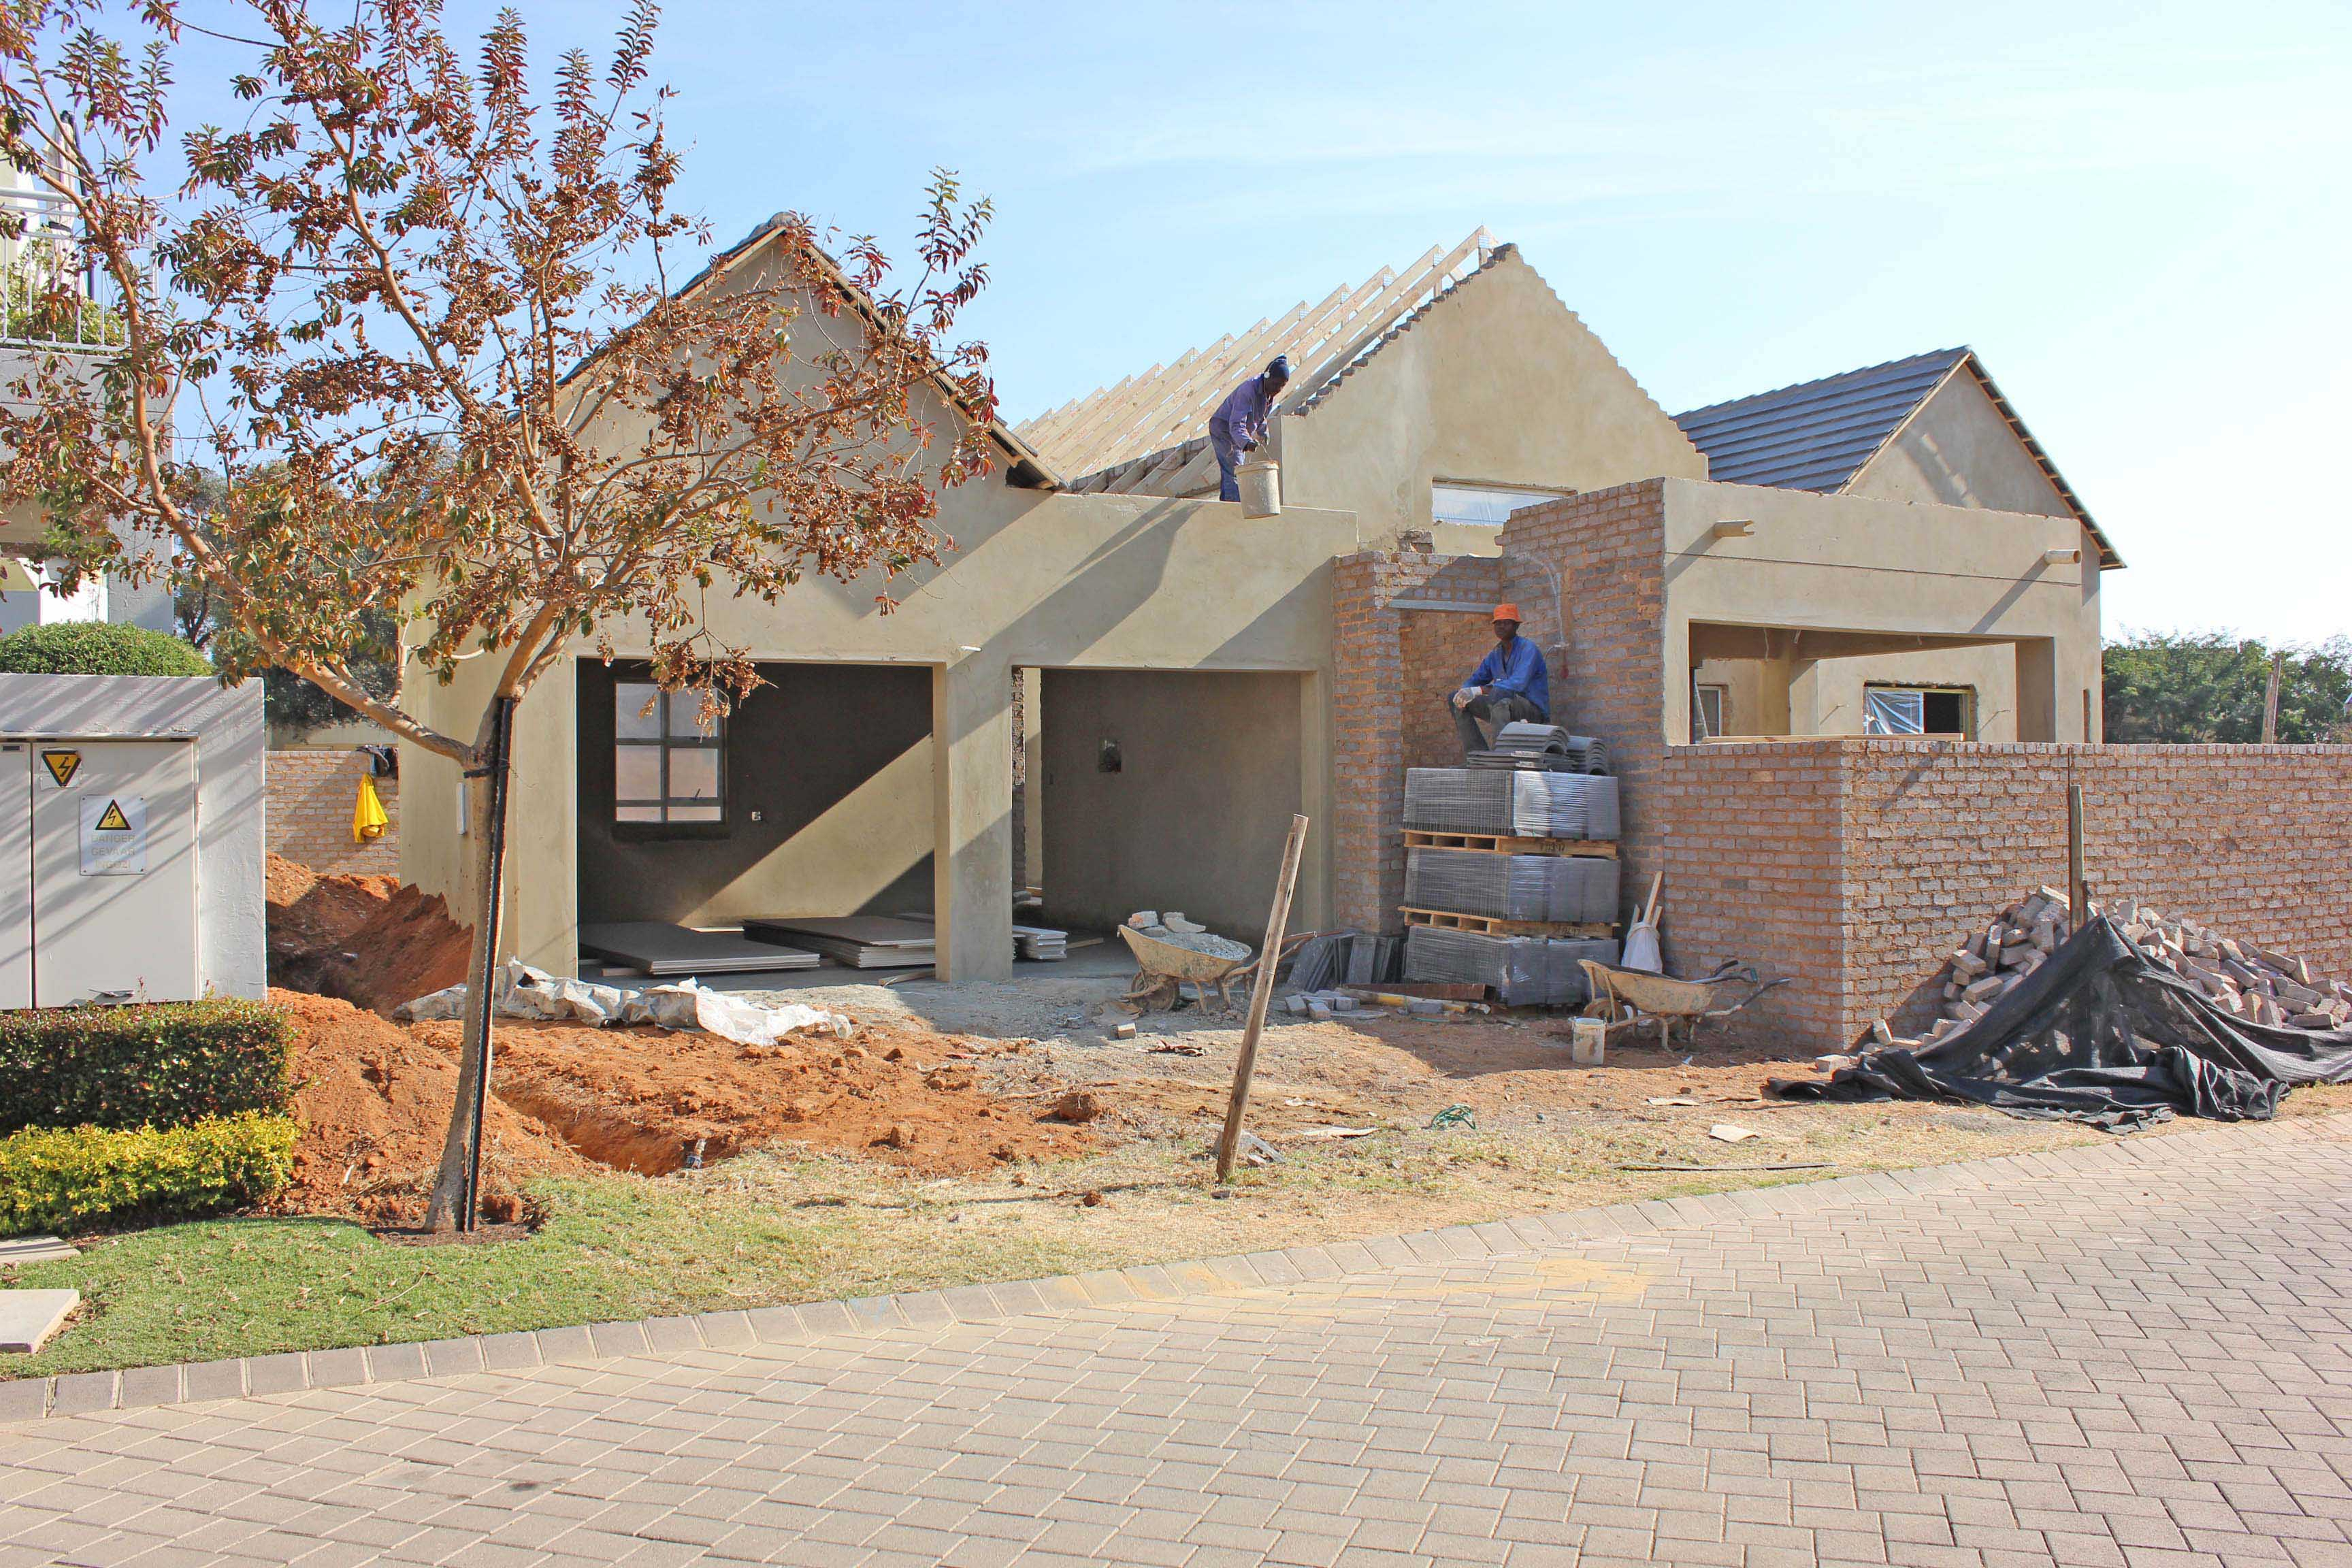 3 Bedroom Townhouse for sale in North Riding ENT0075308 : photo#21